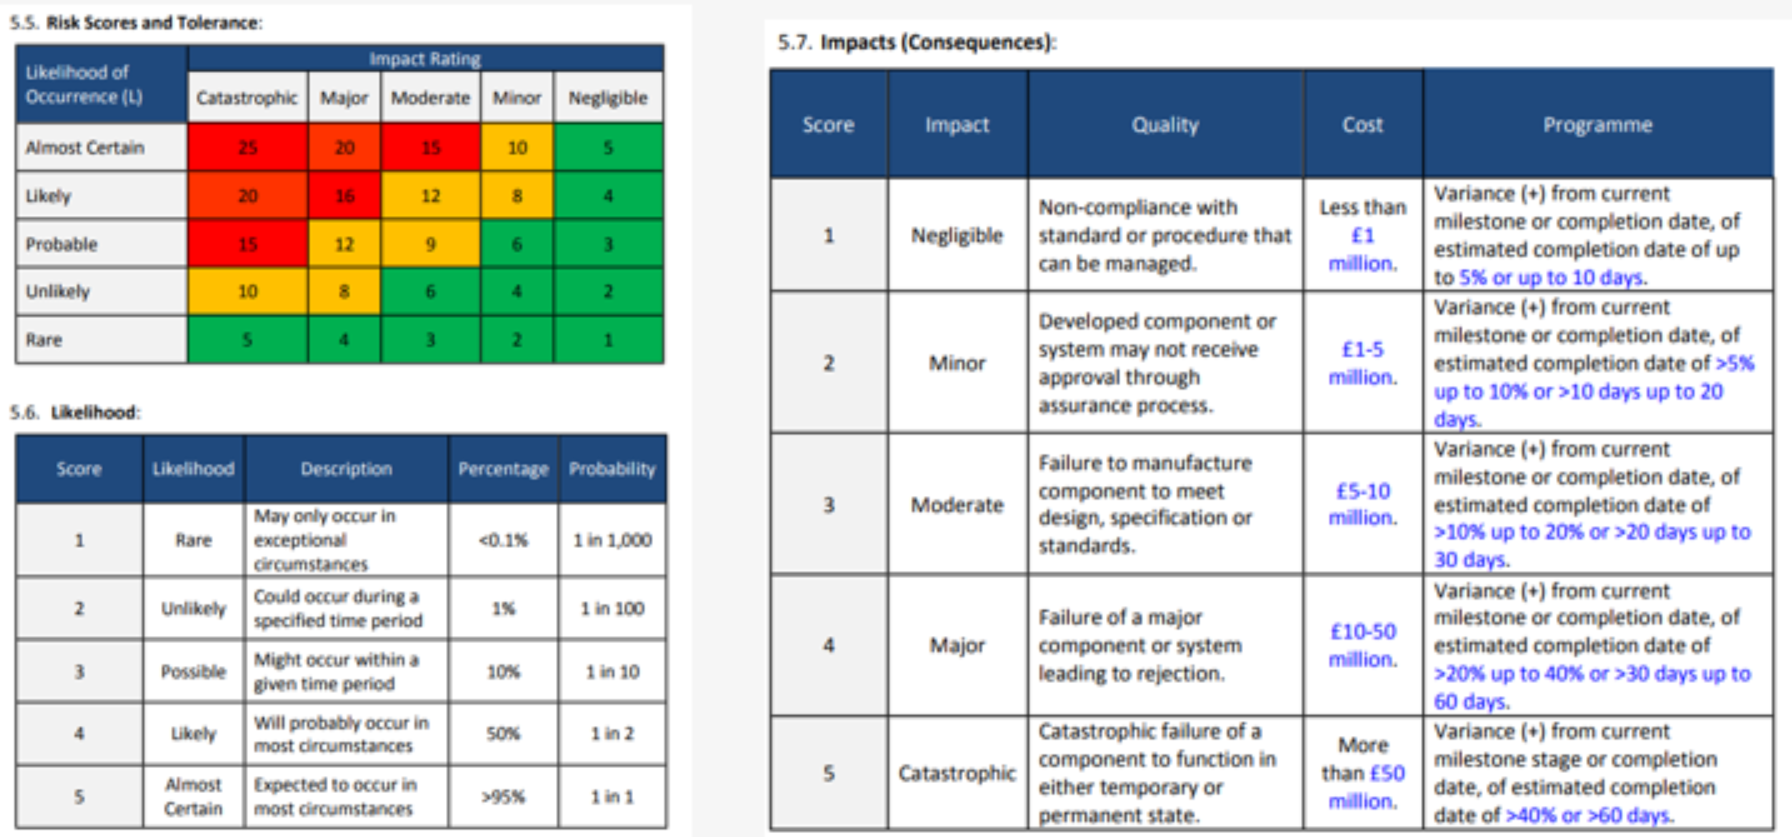 Risk impacts assessment